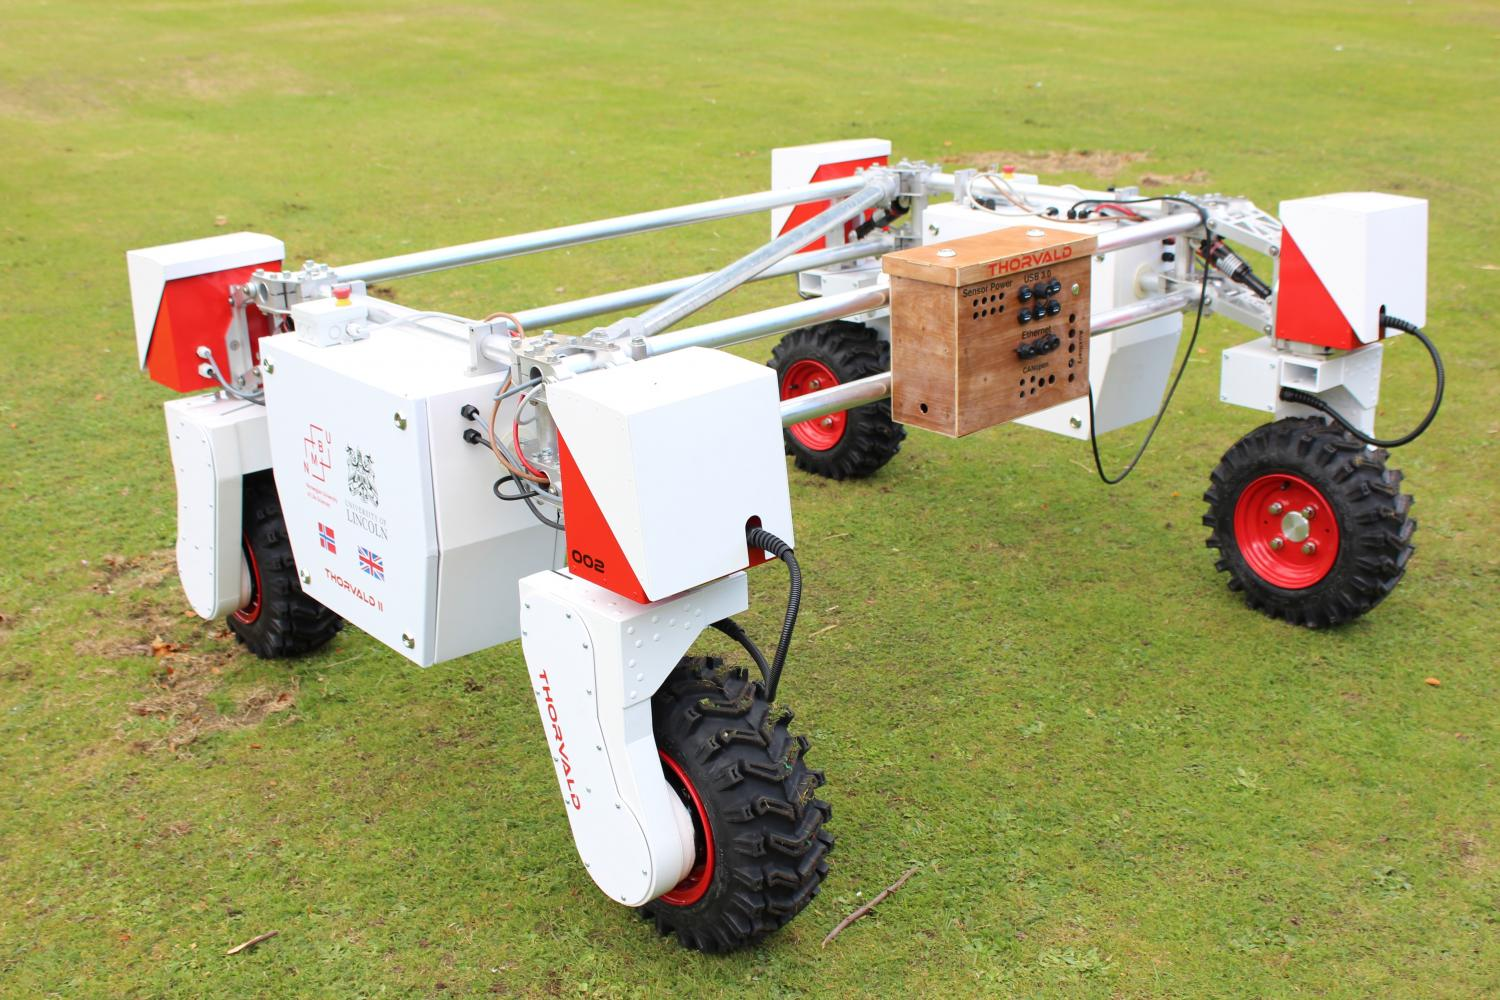 New Mobile Robot To Support Agri Tech Experiments In The Field